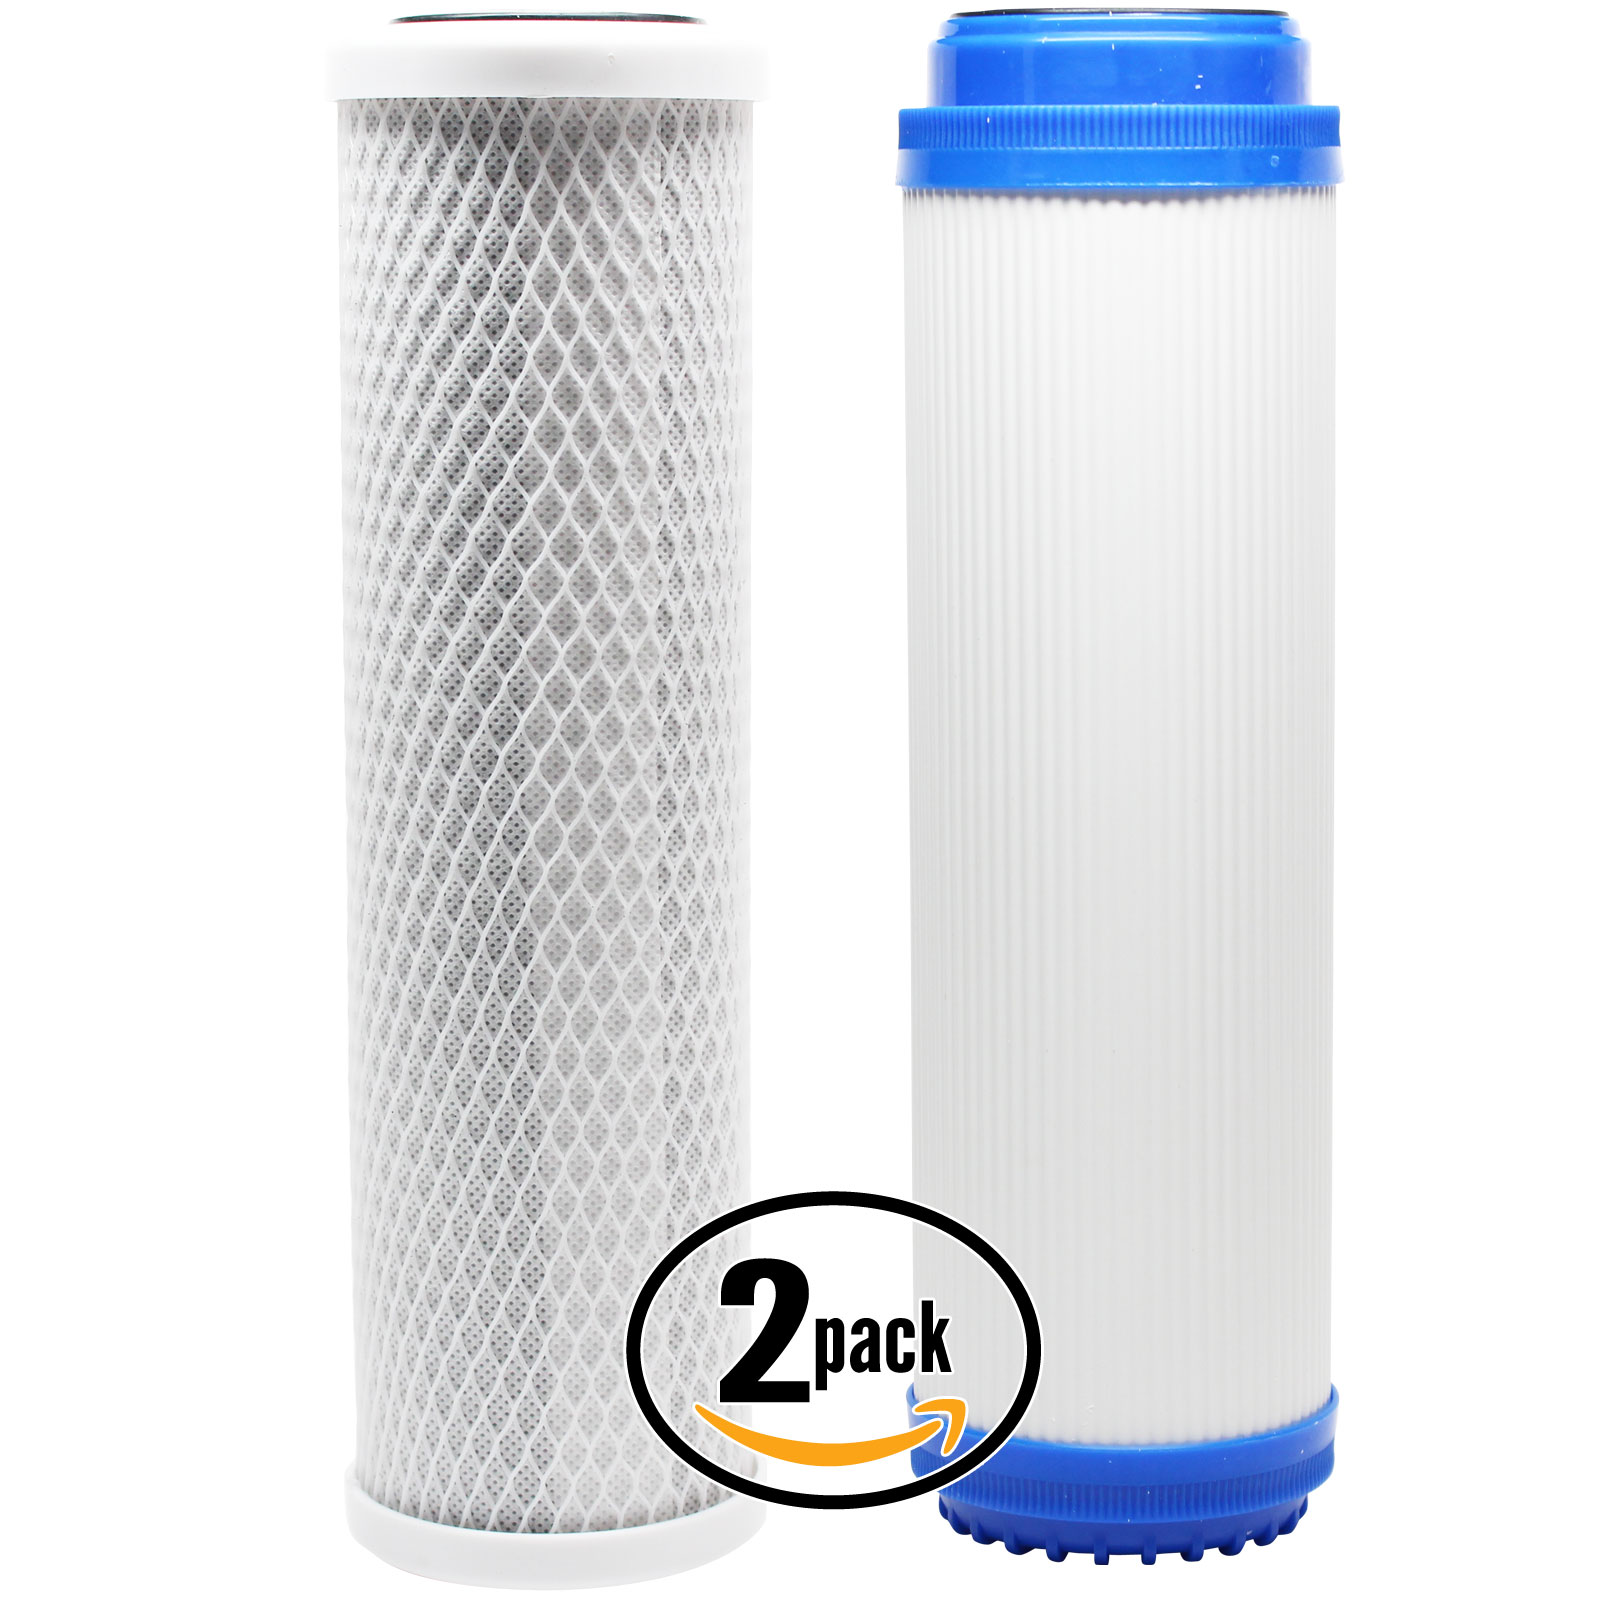 2-Pack Replacement Filter Kit for American Plumber WTOS-100 RO System - Includes Carbon Block Filter & Granular Activated Carbon Filter - Denali Pure Brand